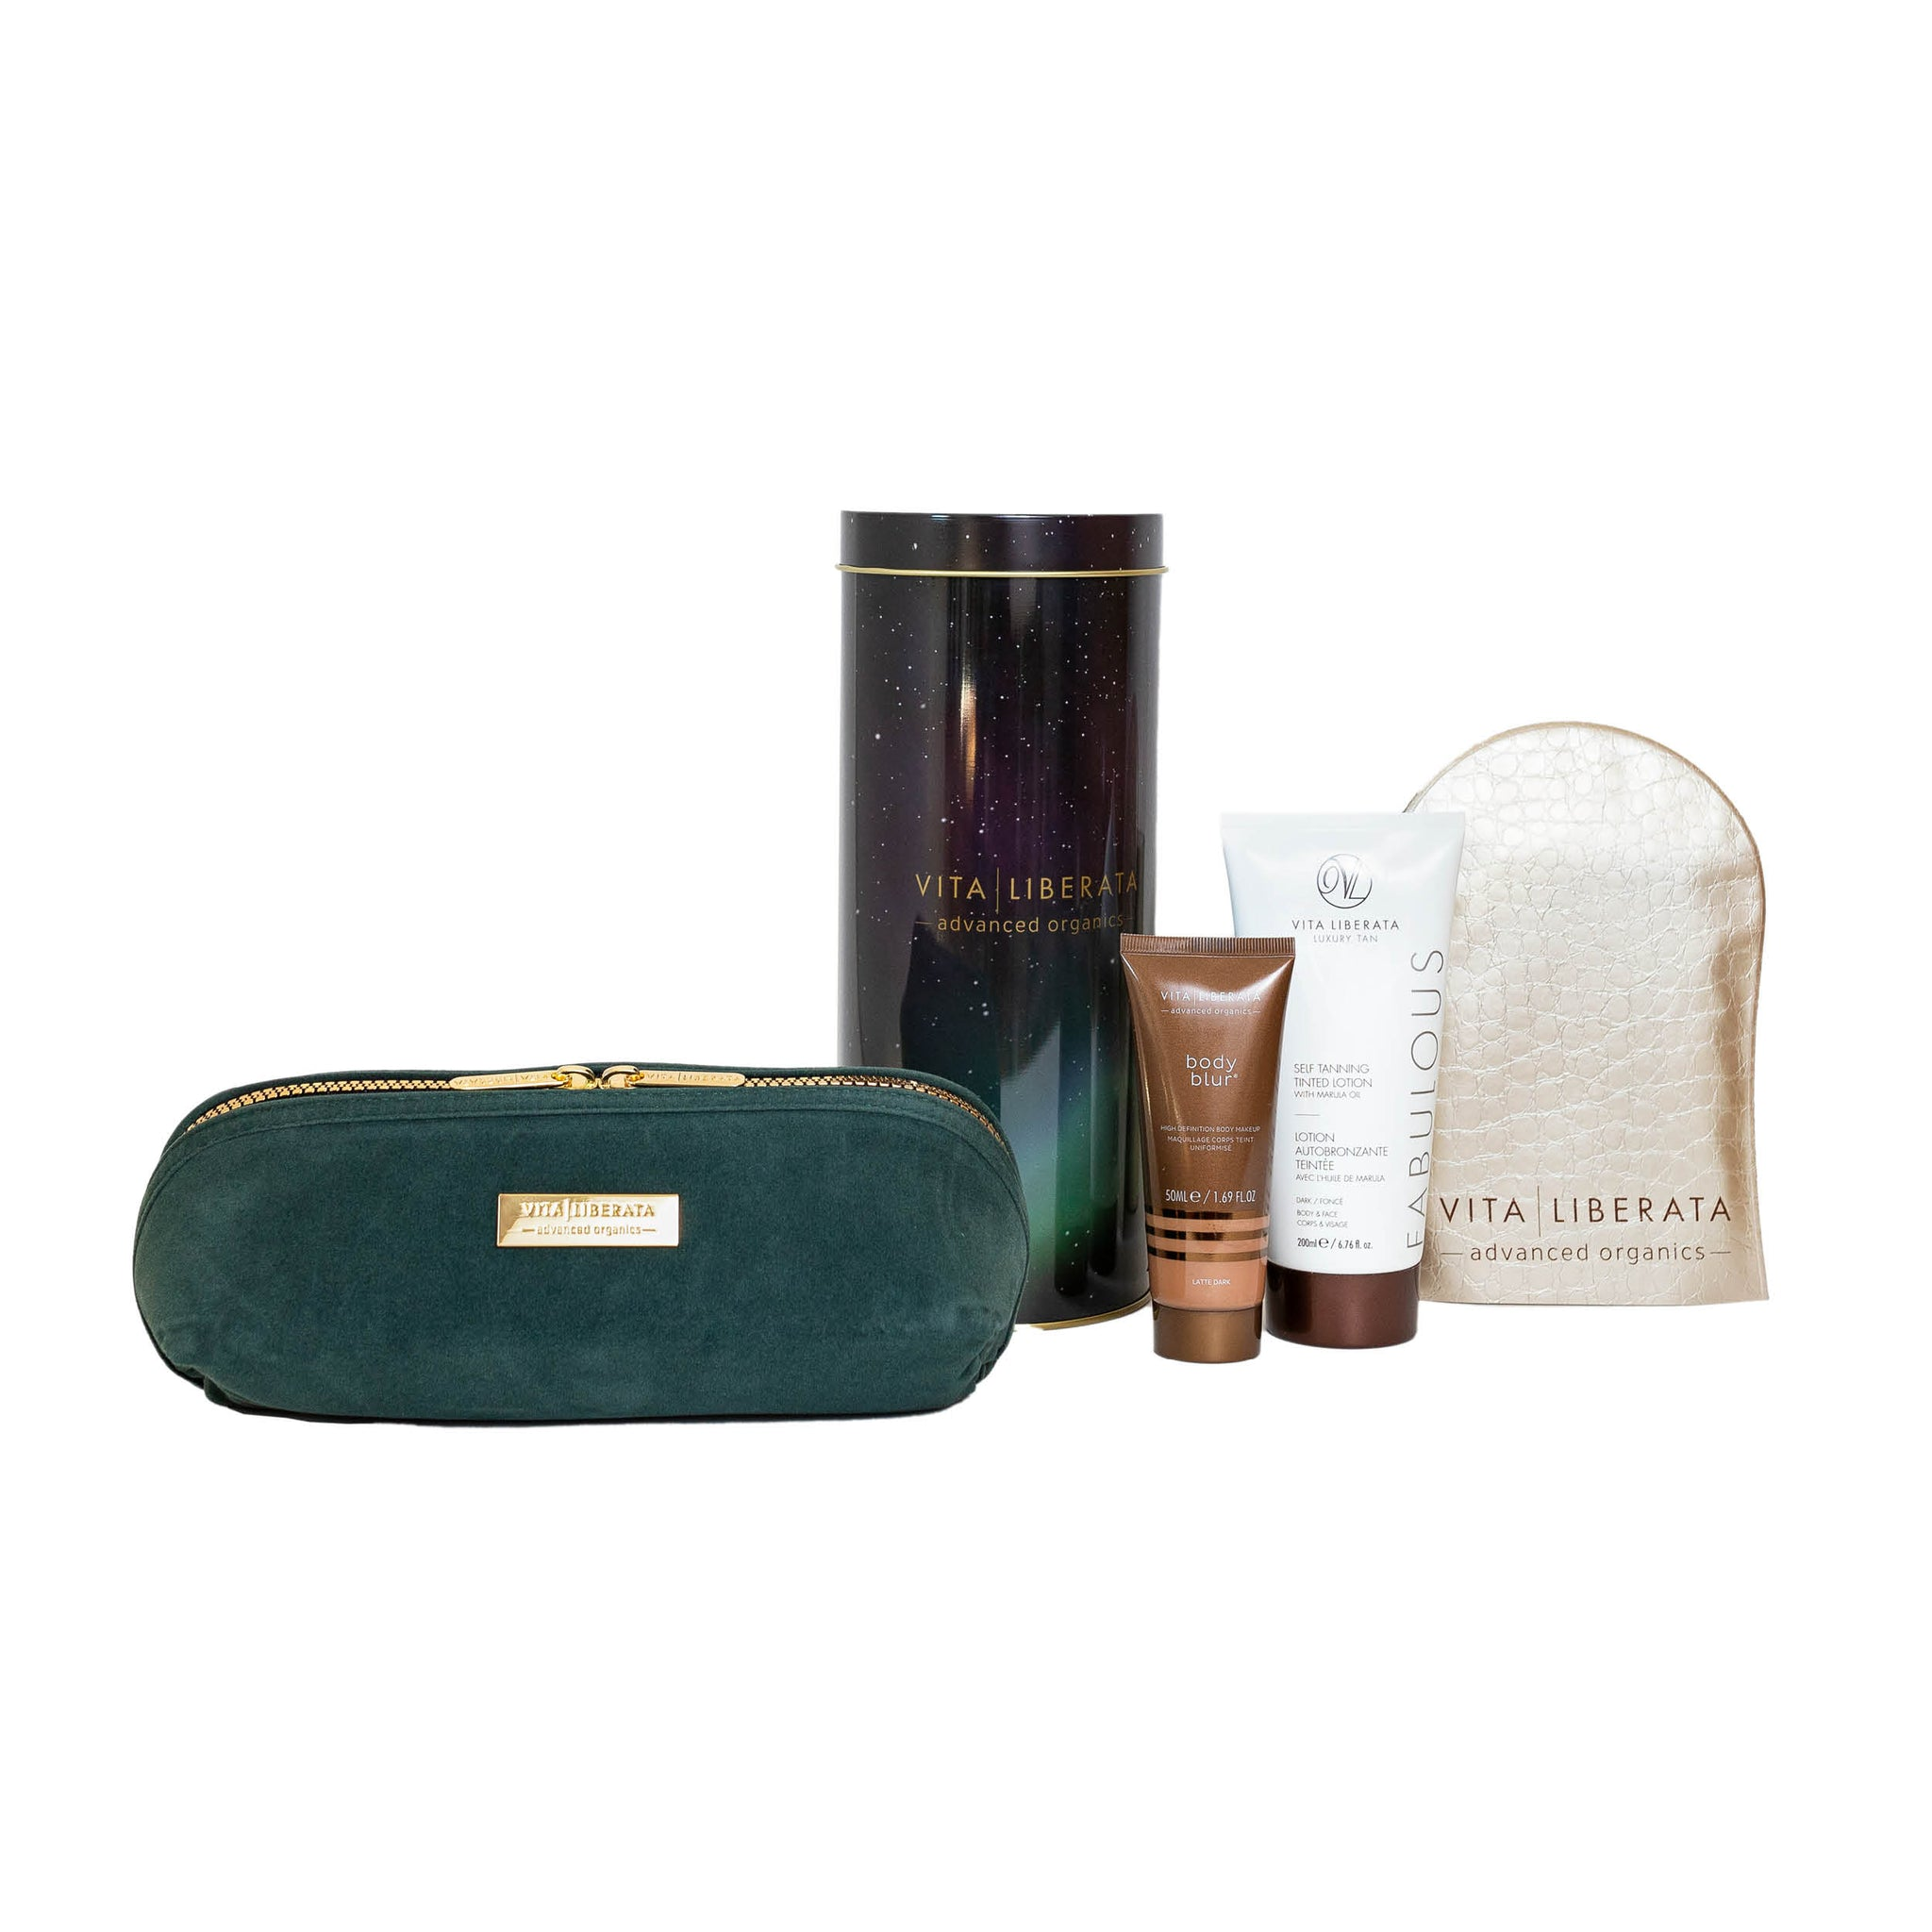 Vita Liberata Fabulous Tan & Glow Dark Lotion Gift Set